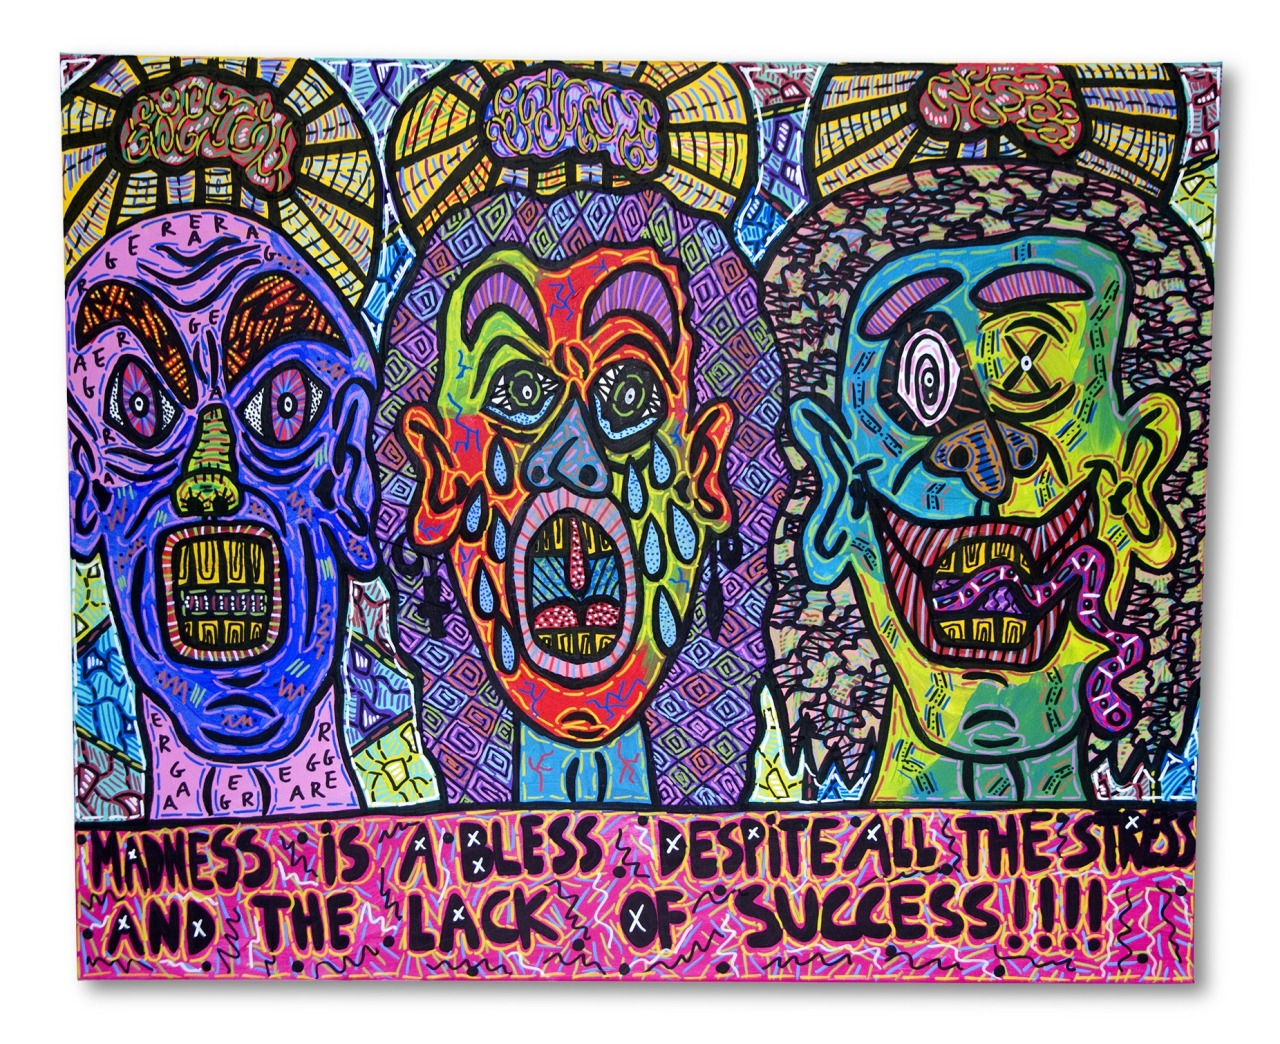 """""""Madness is a bless despite of the stress and the lack of success!!!!"""" , 2015   Acrylic paint and Posca marker on canvas, 120 x 80 cm Private Collection"""